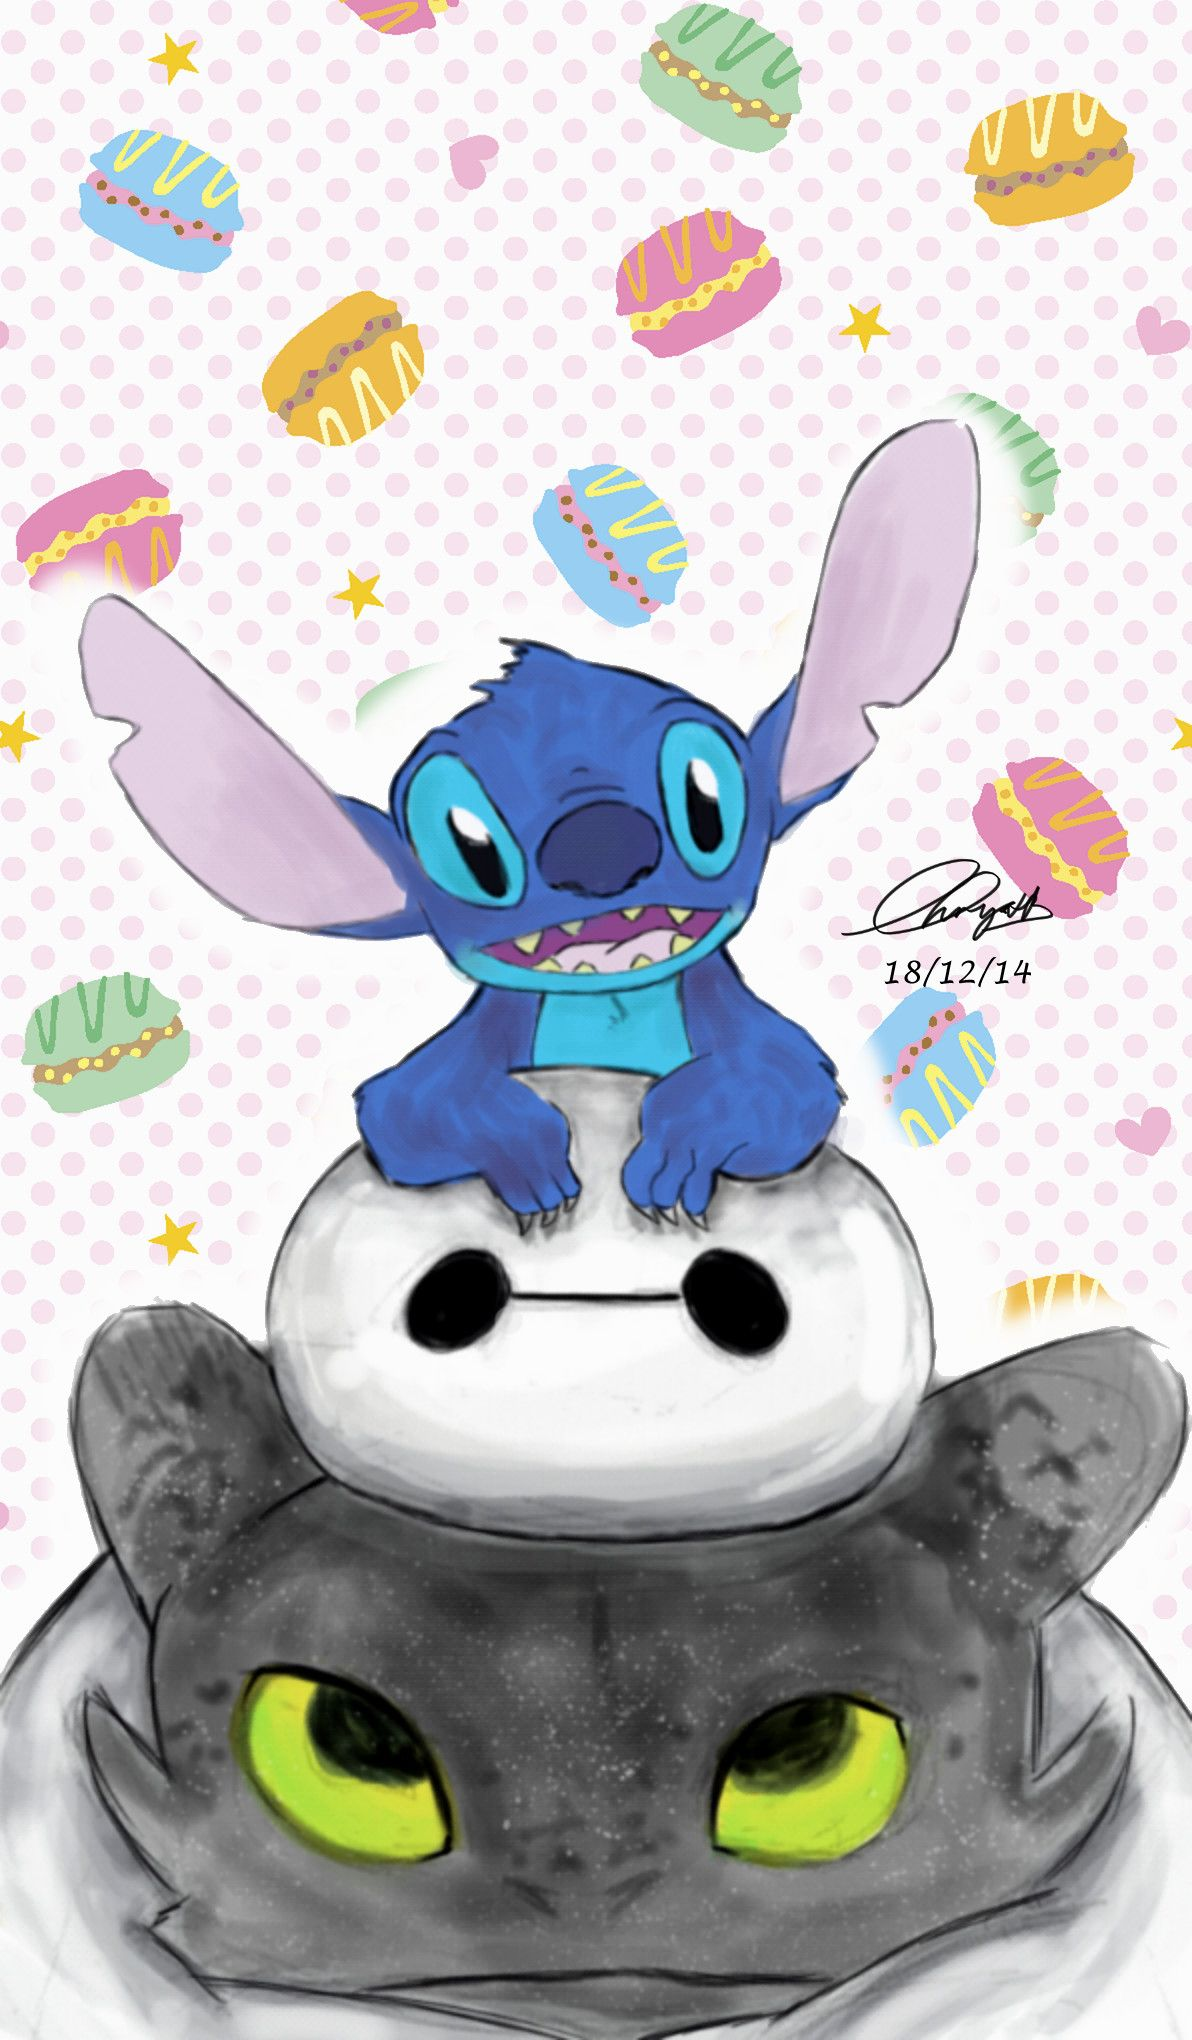 Impresionante Lilo Stitch Wallpapers Gallery para ti | Tapet de pomelo